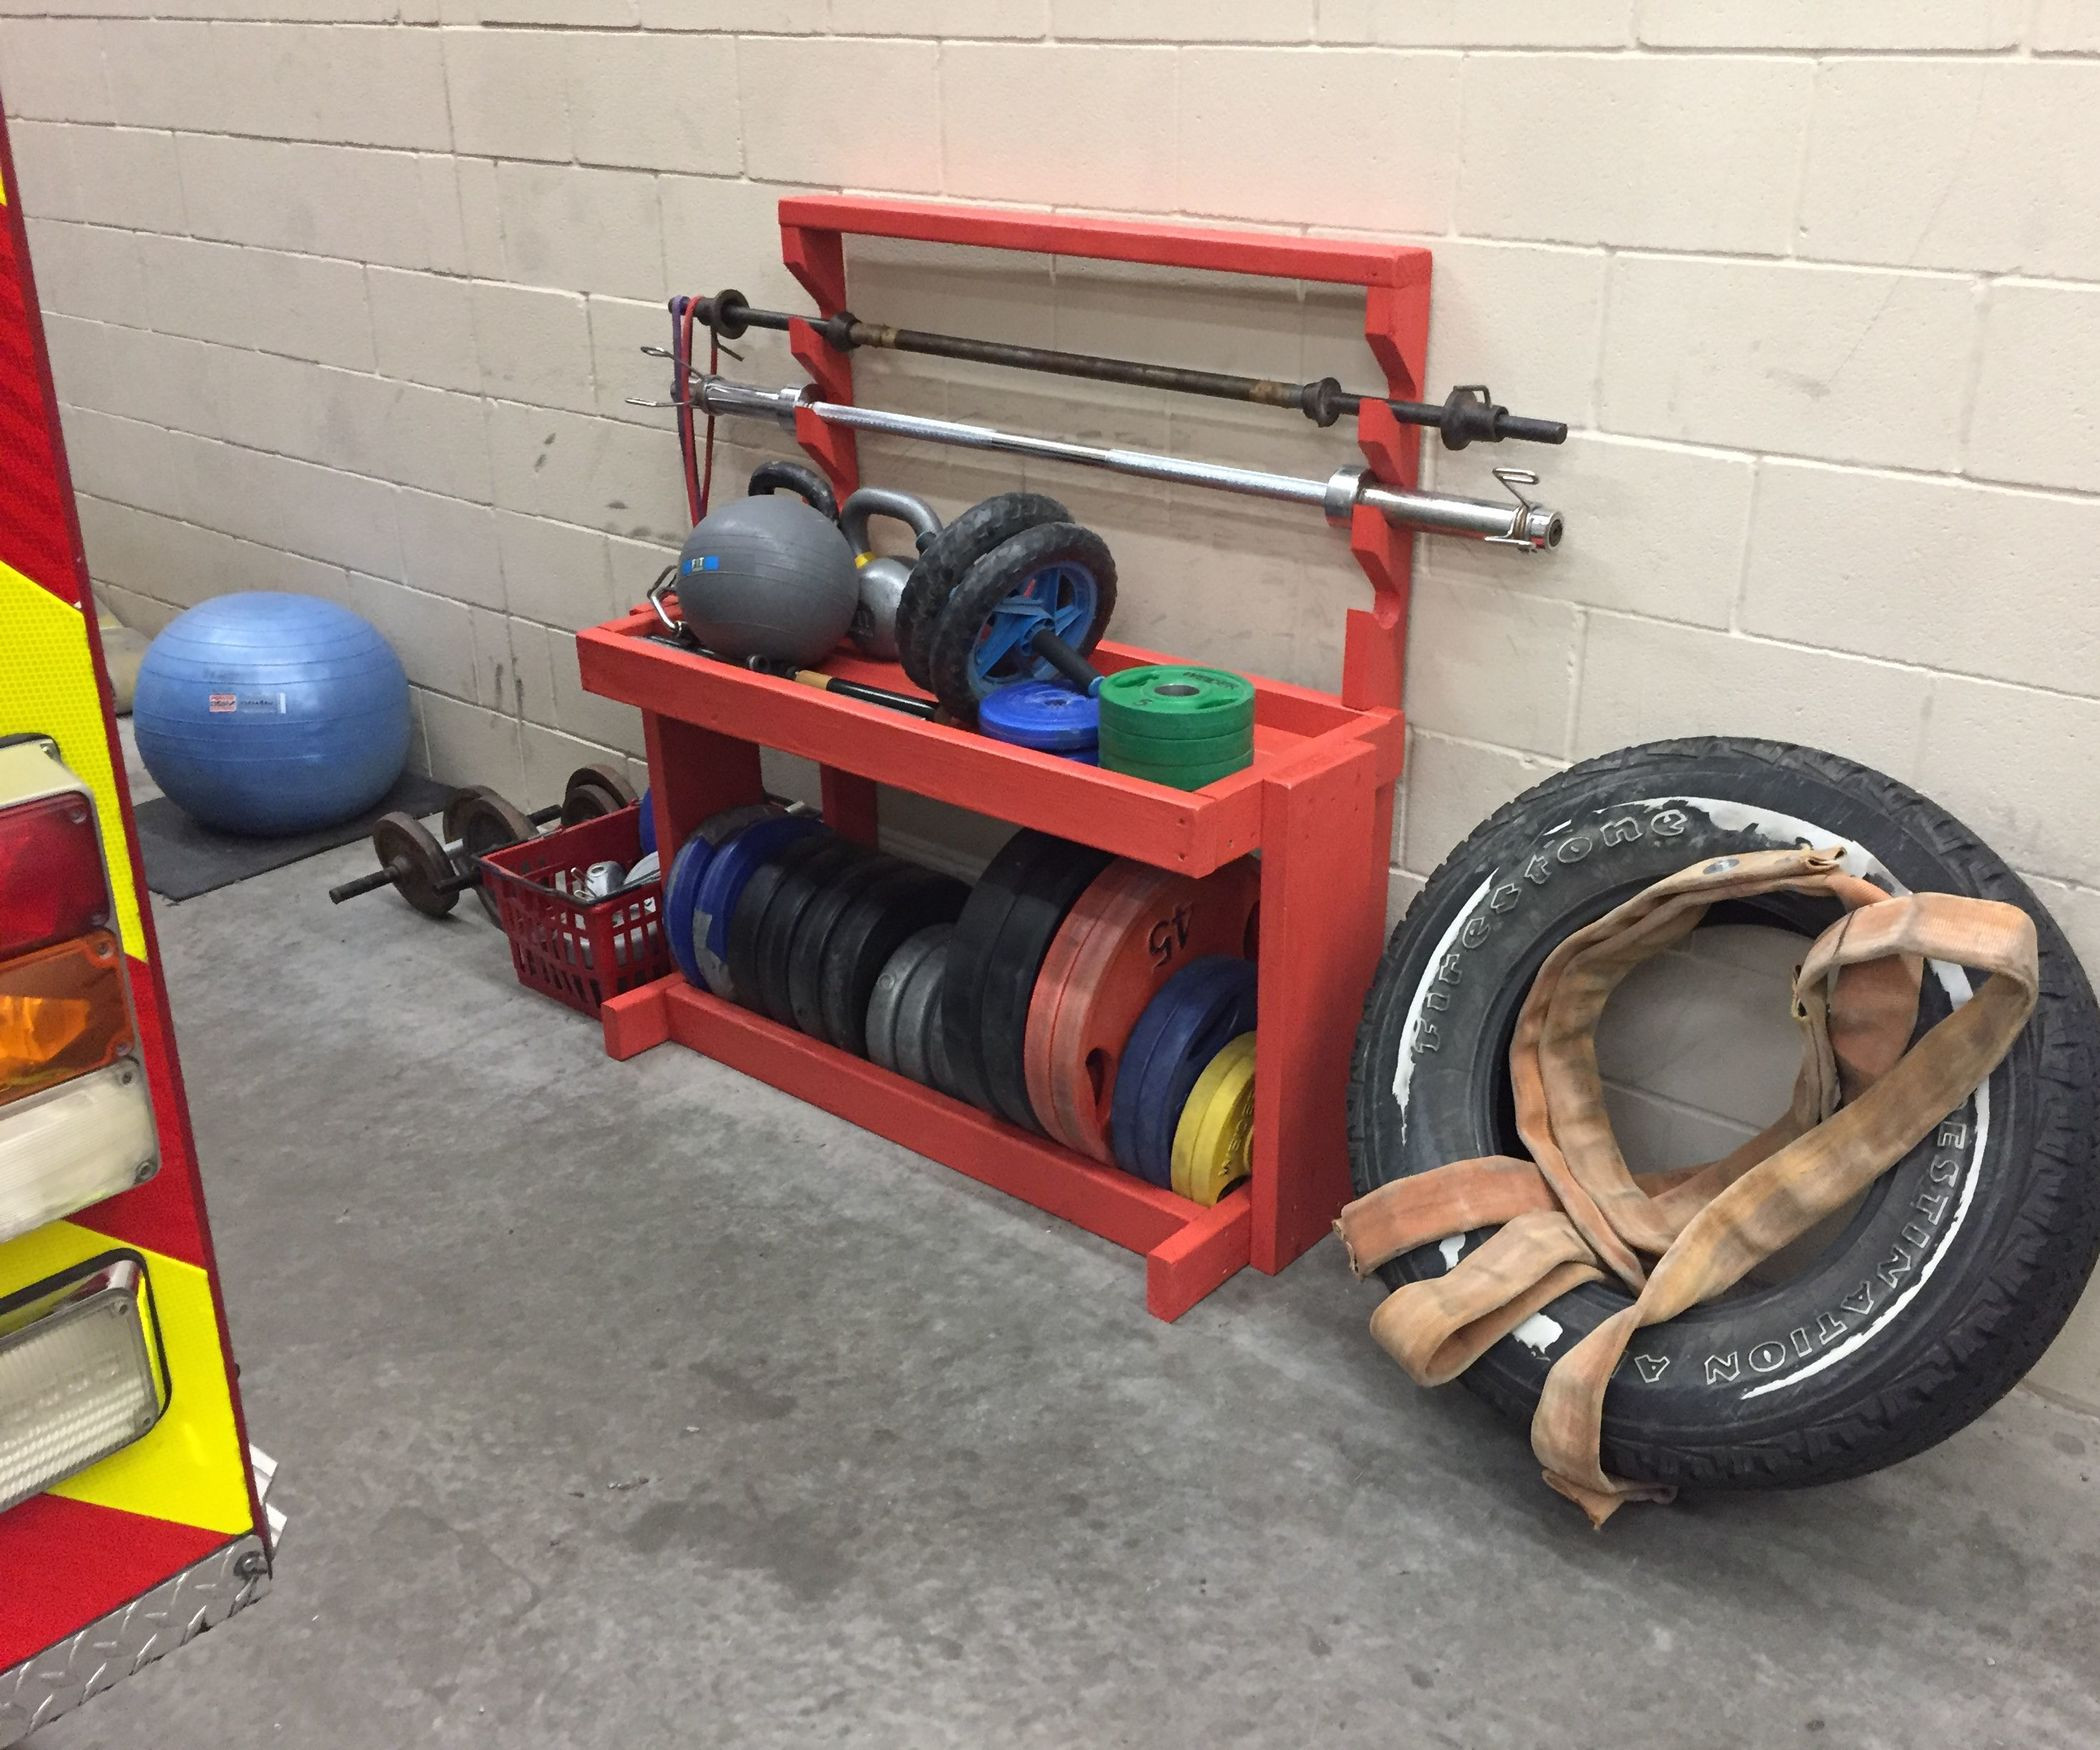 Best ideas about DIY Barbell Rack . Save or Pin DIY Weight and Barbell Storage Rack 4 Steps with Now.